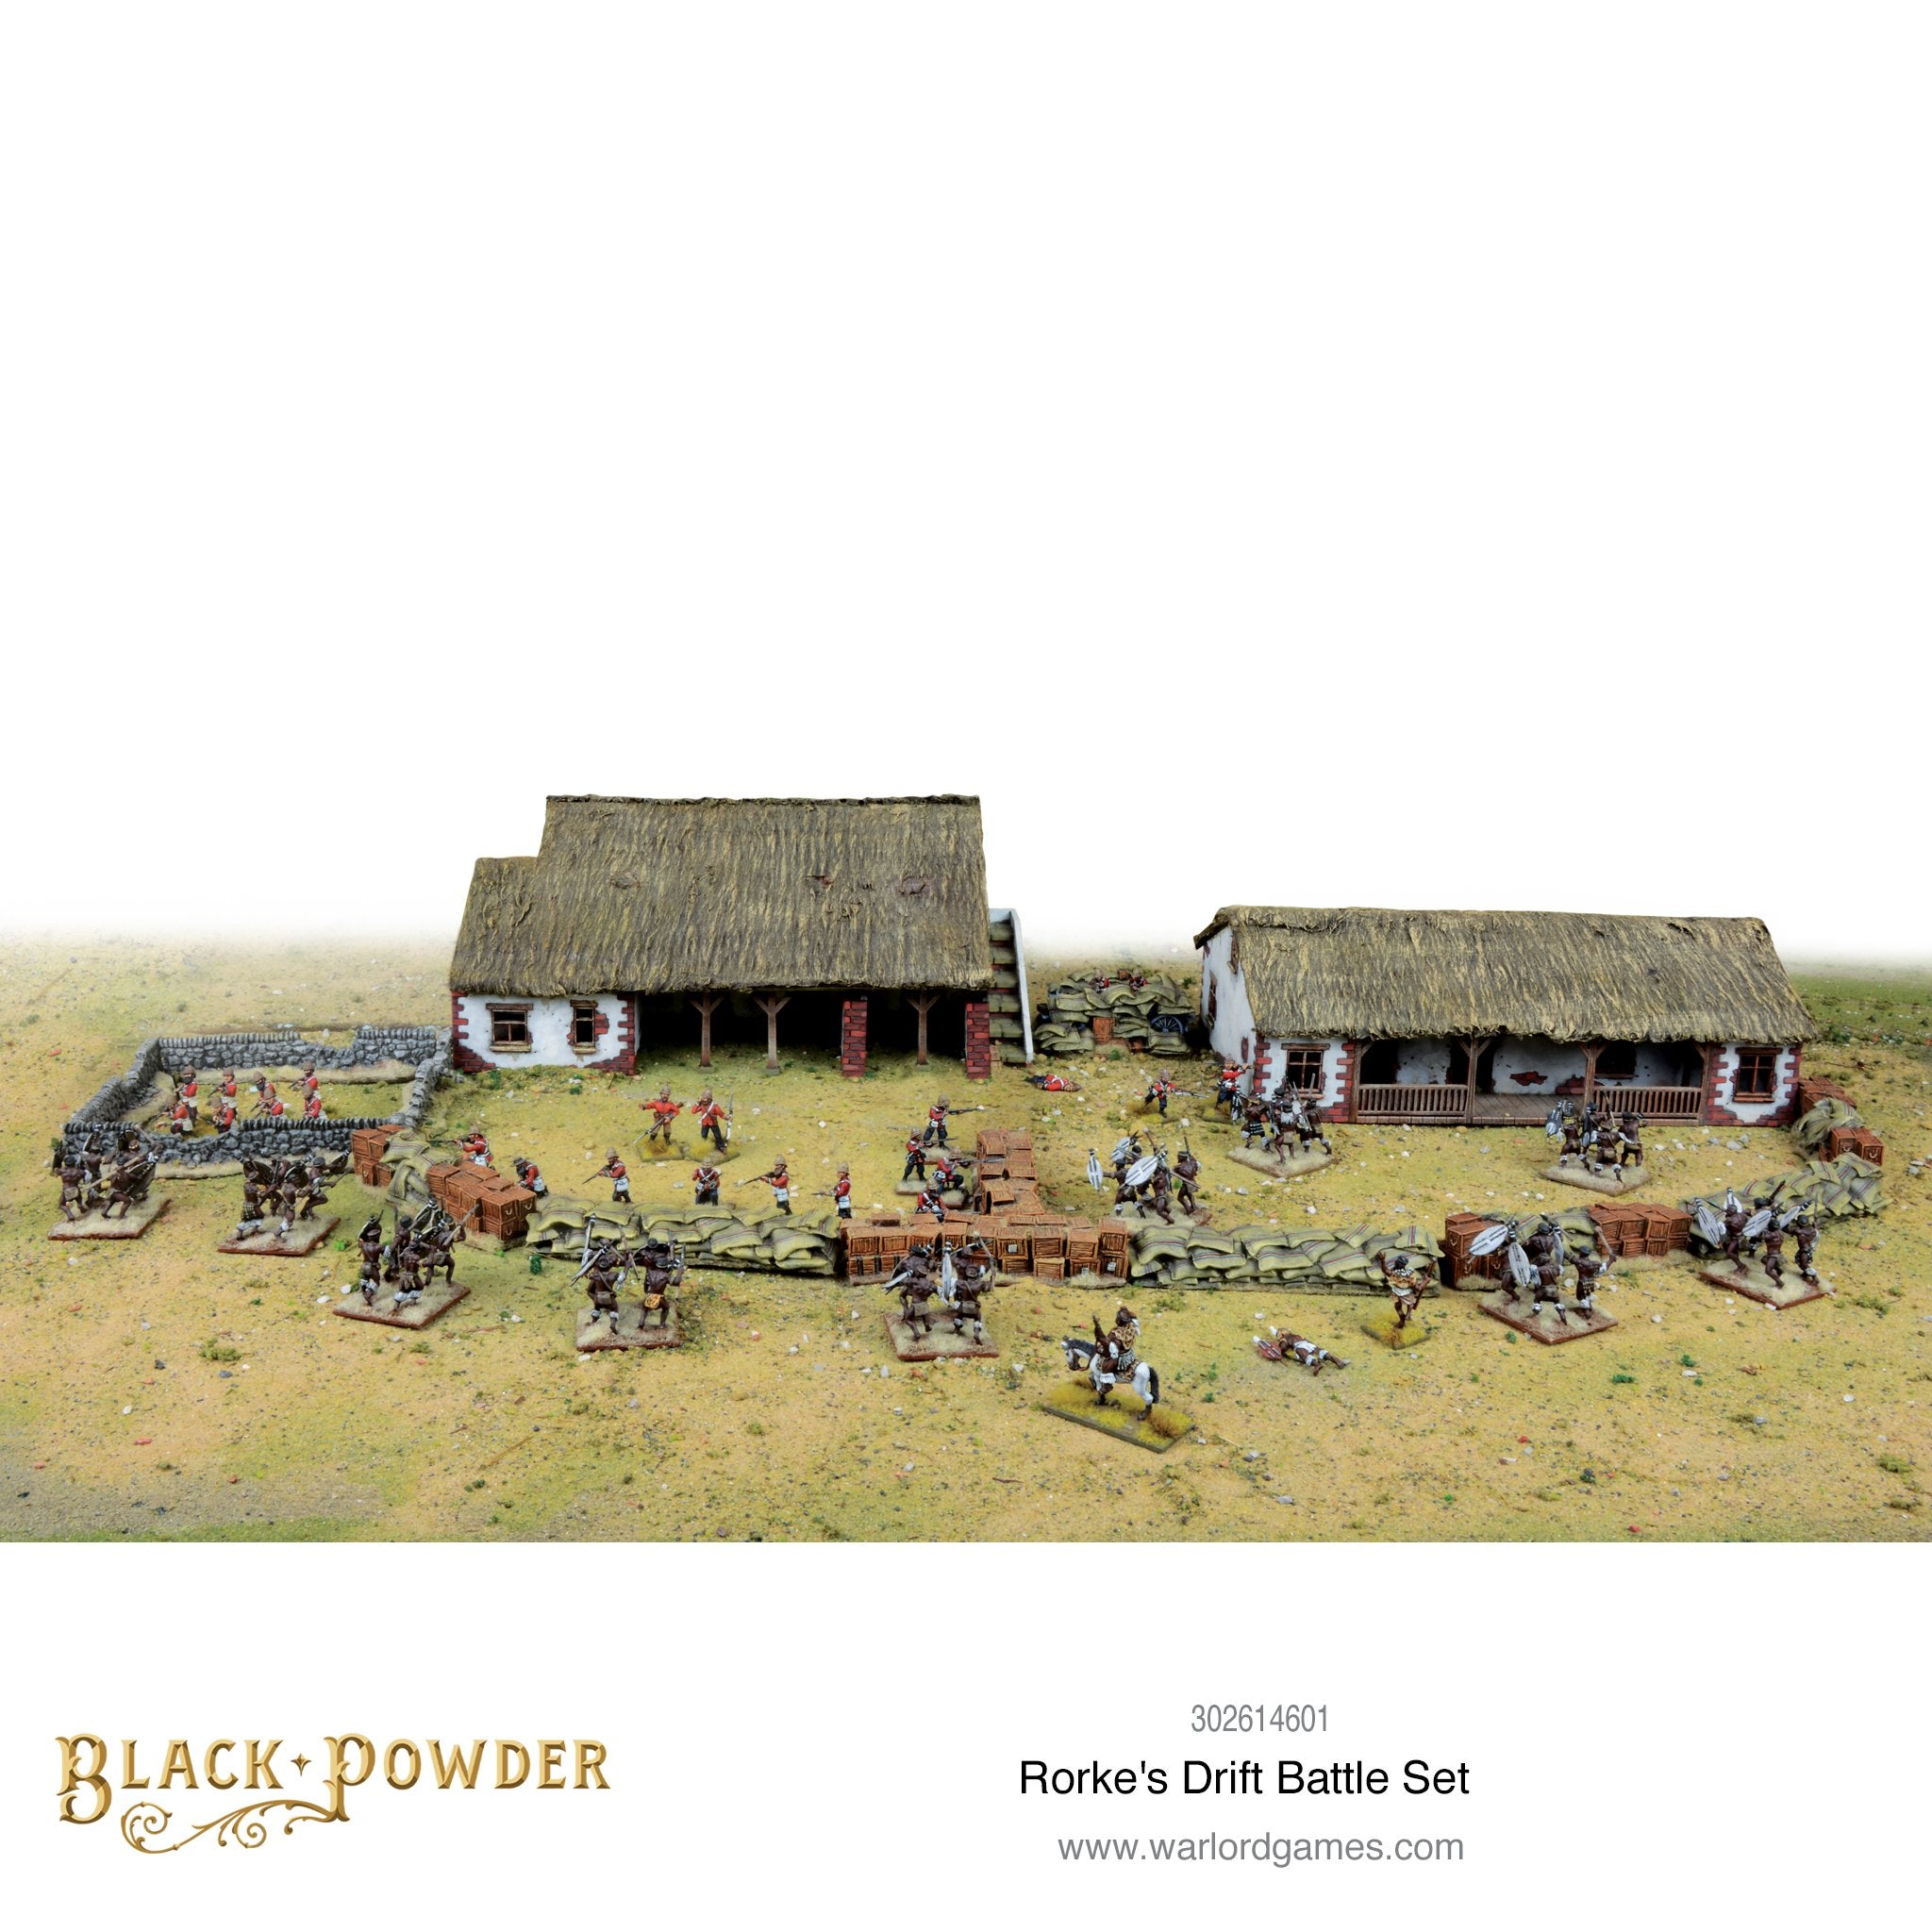 Rorke's Drift Battle set